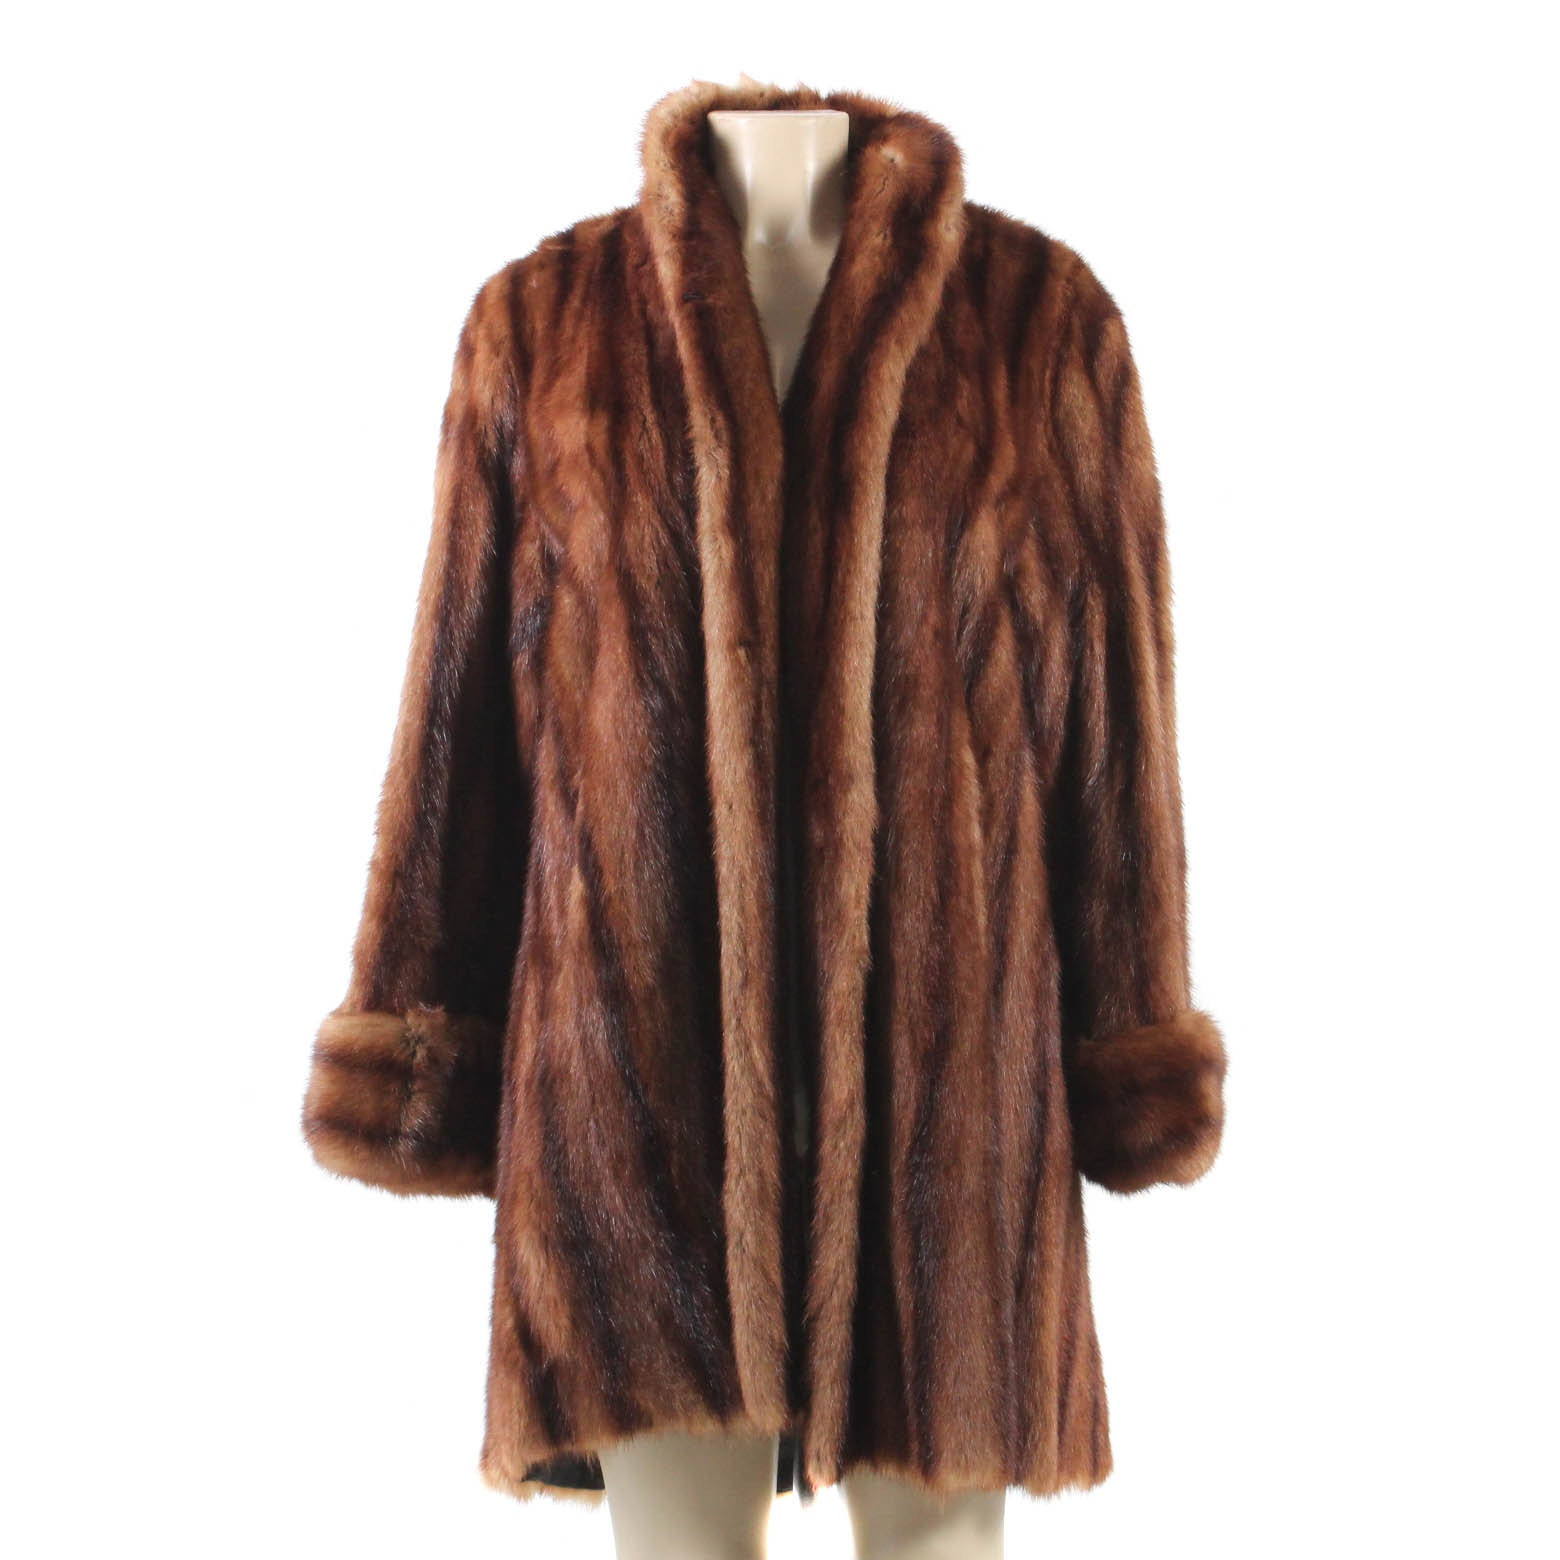 Vintage Dyed Mink Fur Coat